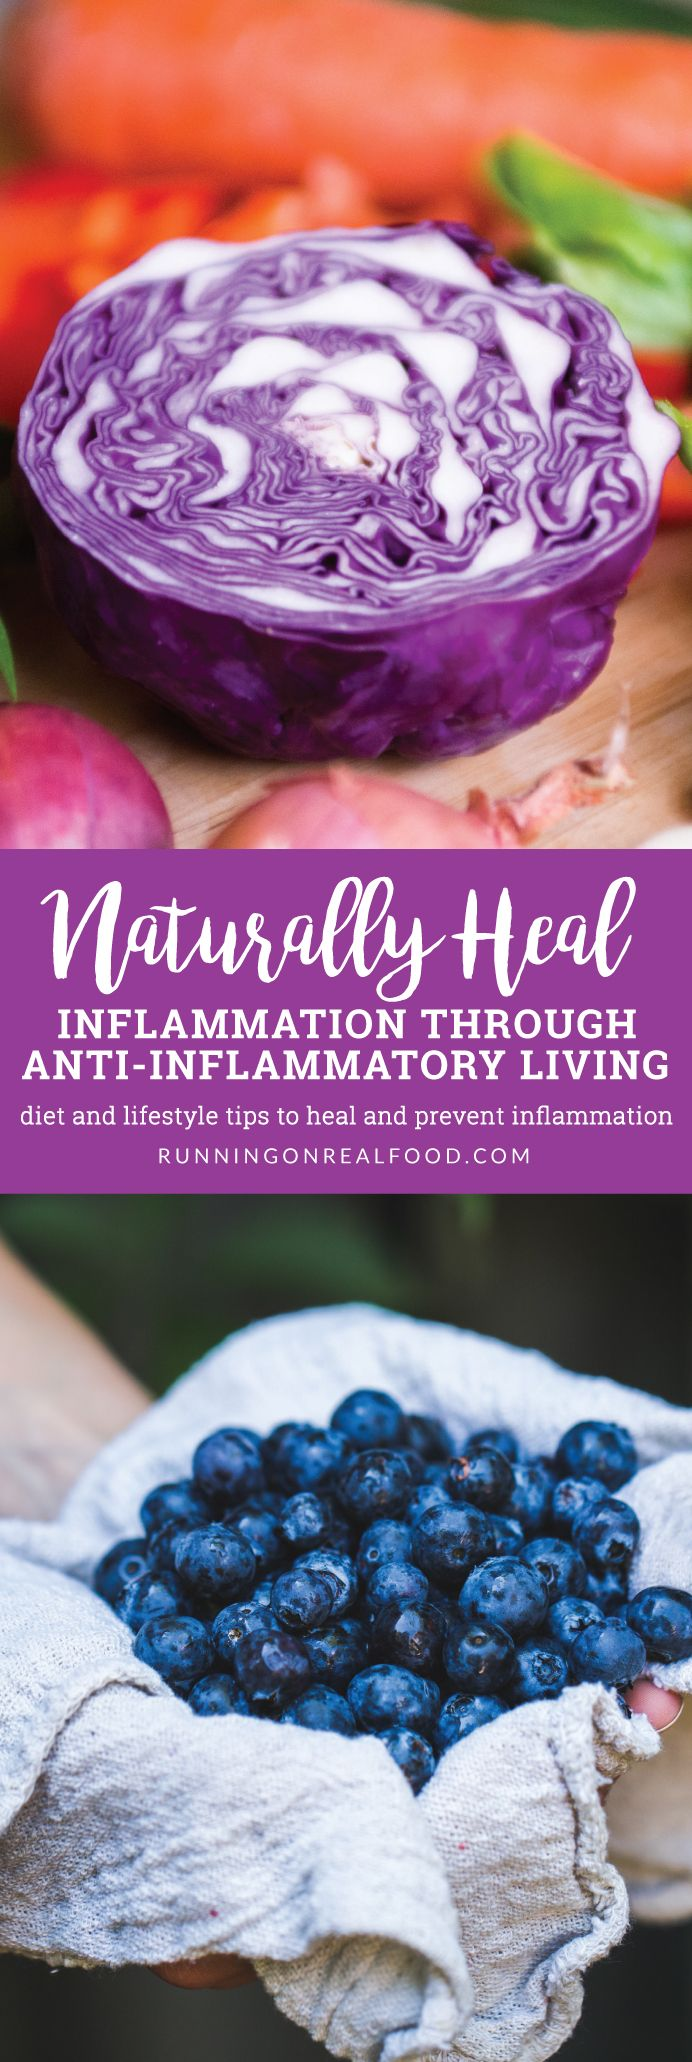 Part one in a series on anti-inflammatory lifestyle. Learn what causes chronic inflammation and how you can prevent and heal it naturally through diet and lifestyle.